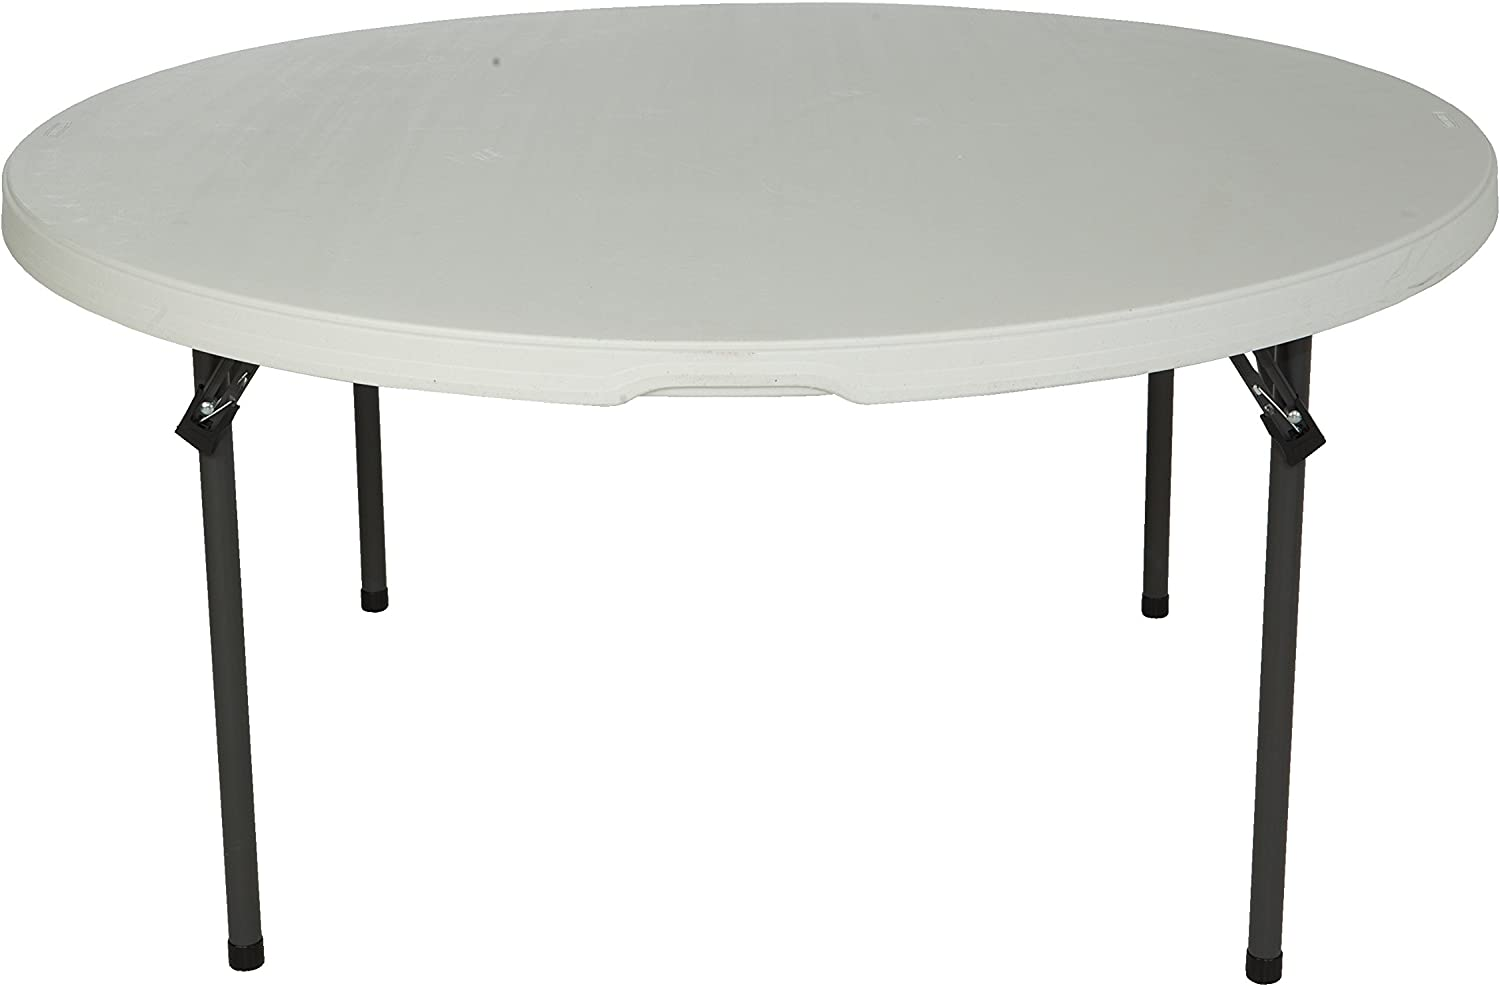 - Amazon.com: Lifetime 280435 Commercial Round Folding Table, 5 Feet